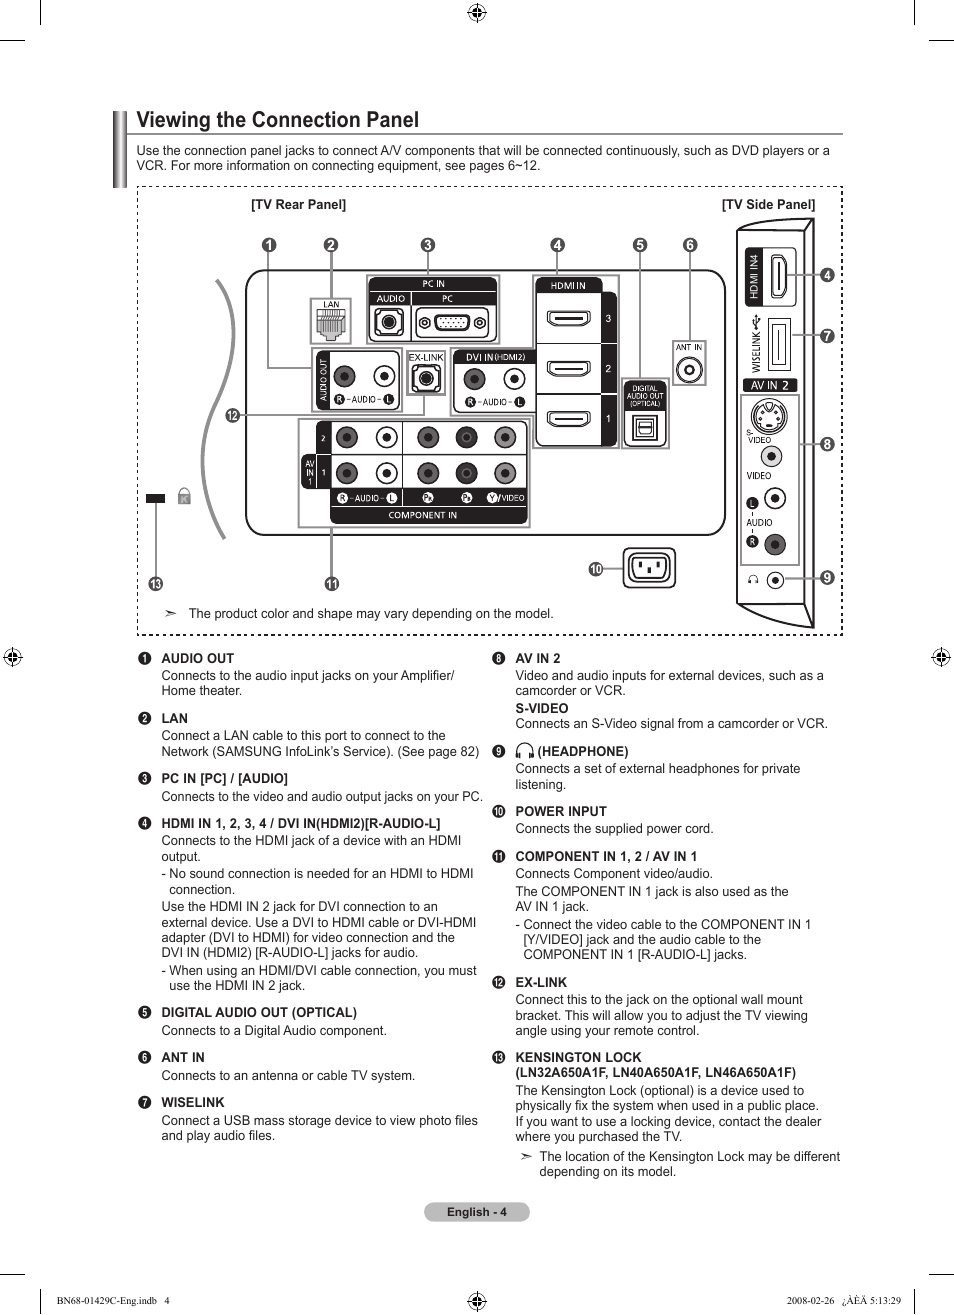 Viewing the connection panel   Samsung LN46A650A1FXZA User Manual   Page 6  / 222